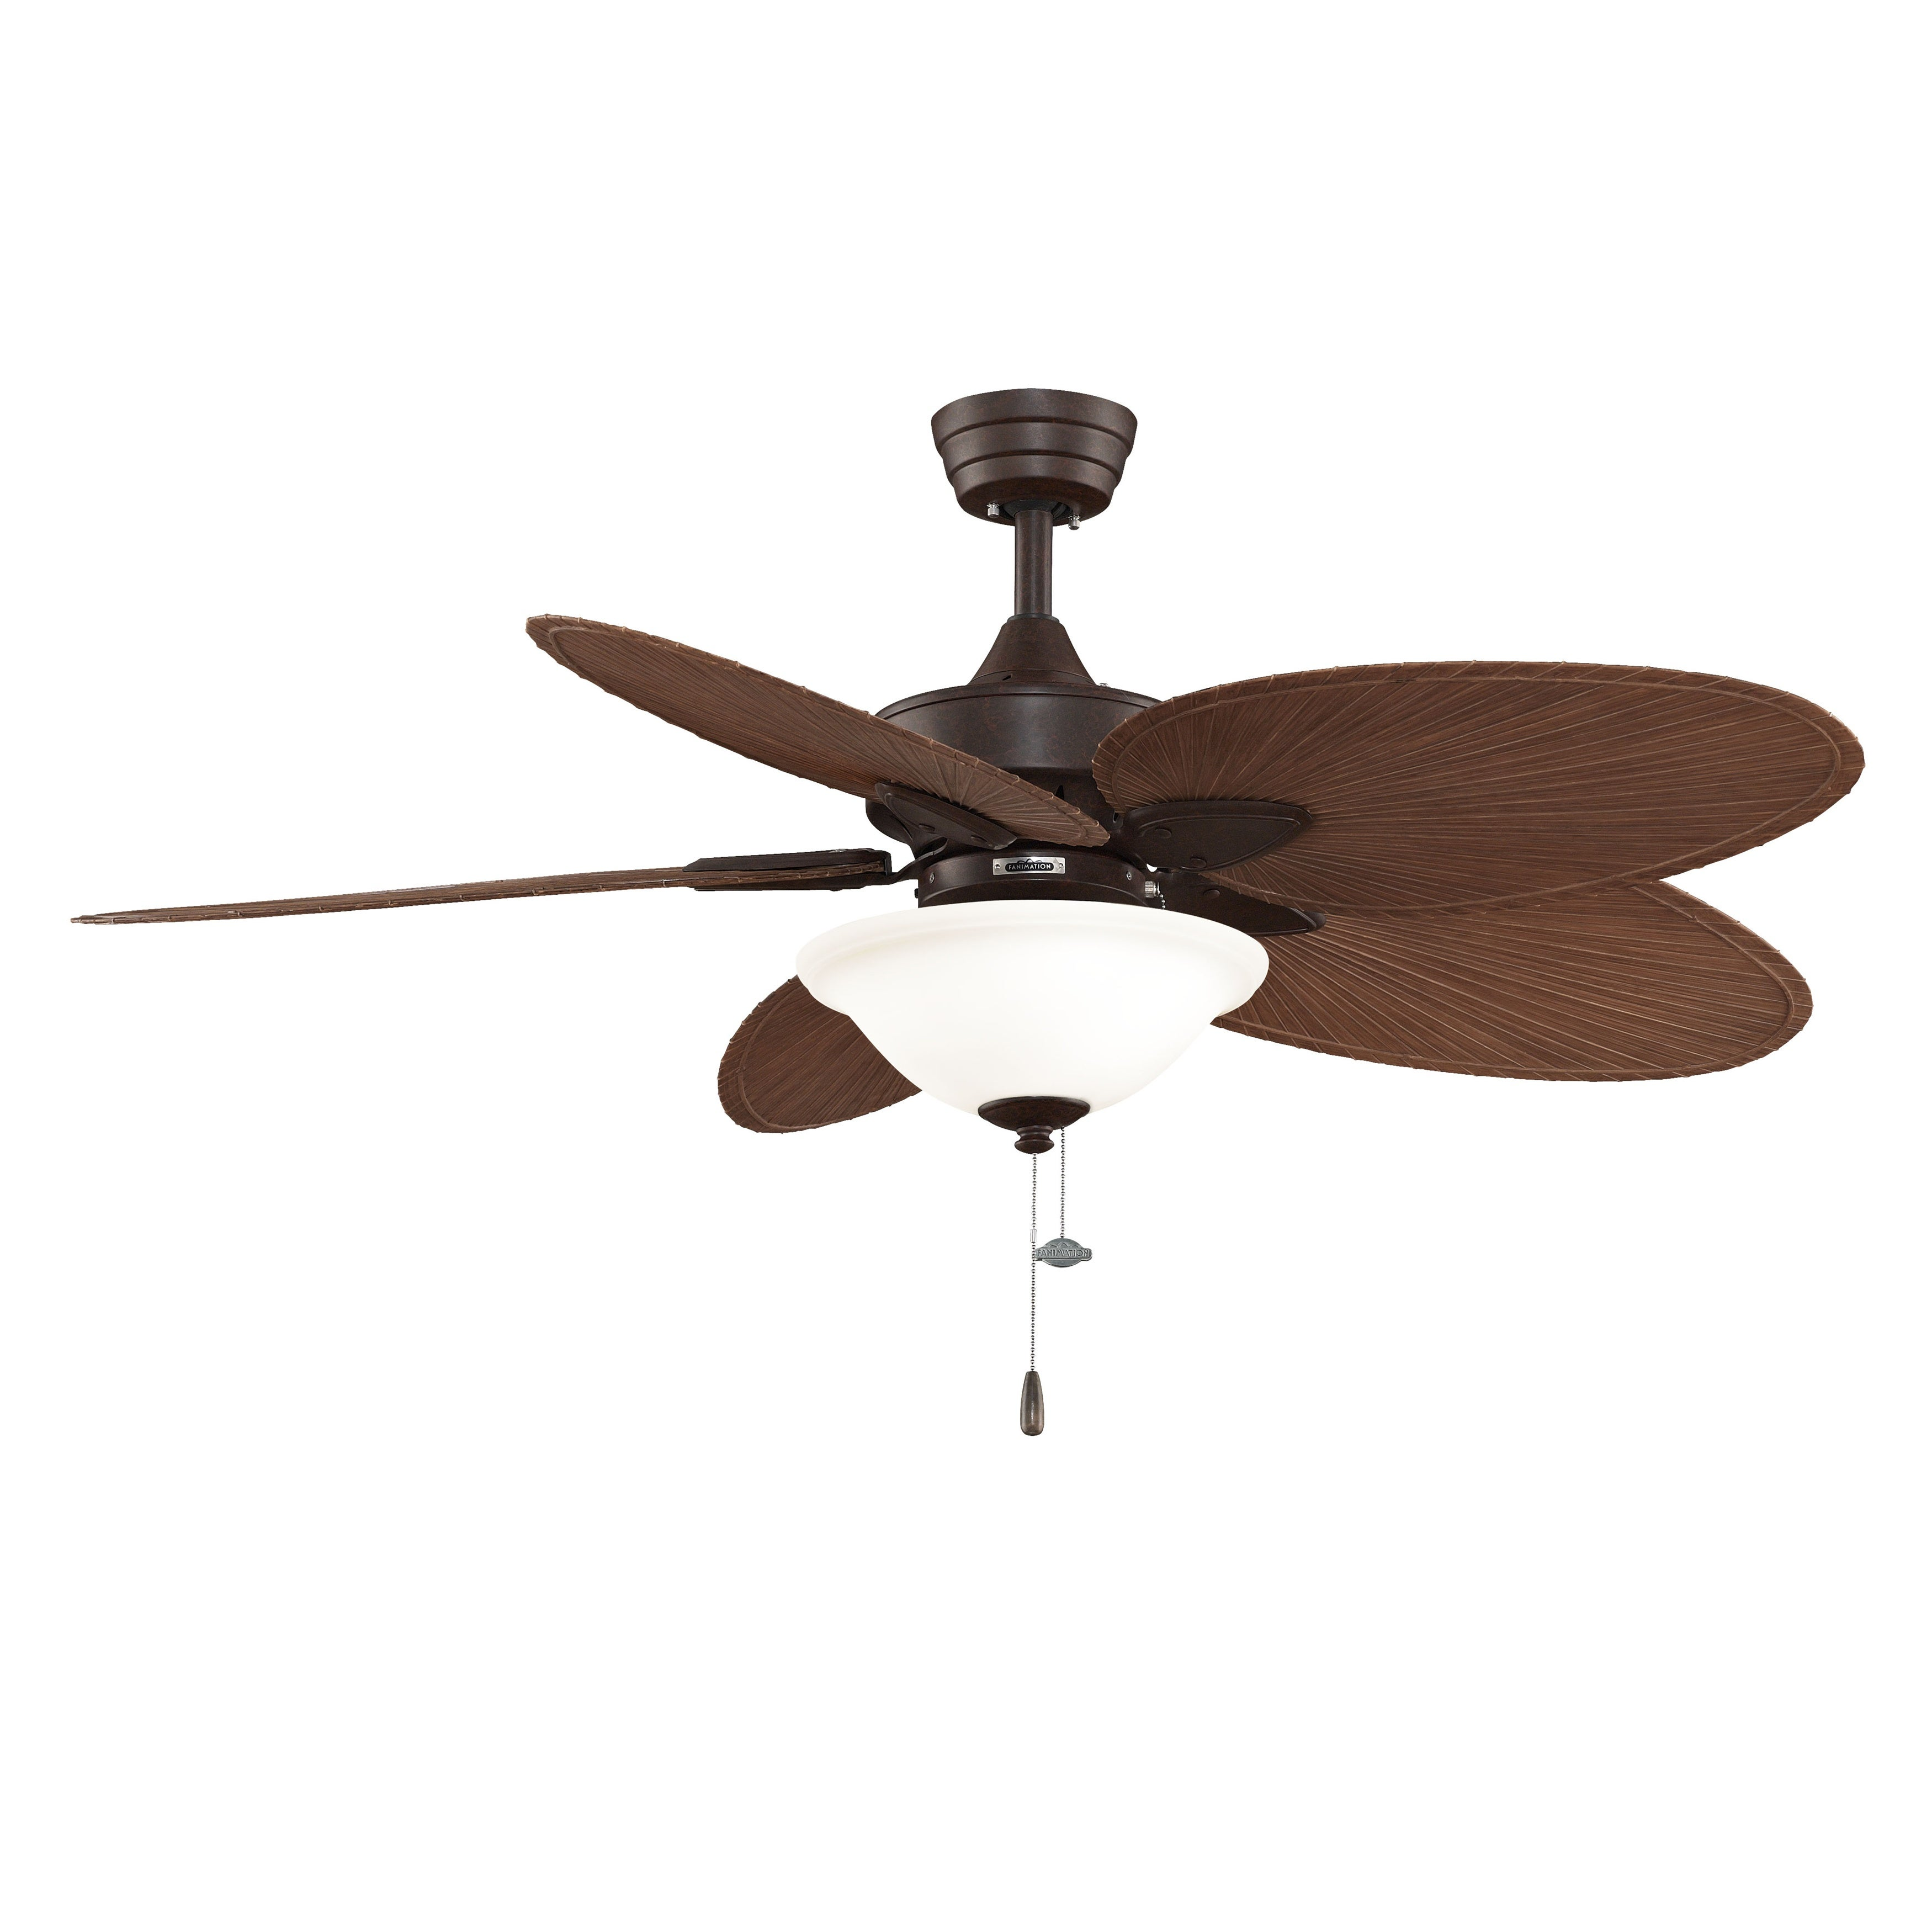 Fanimation Windpointe 52-inch Rust Frosted Glass Ceiling Fan at Sears.com